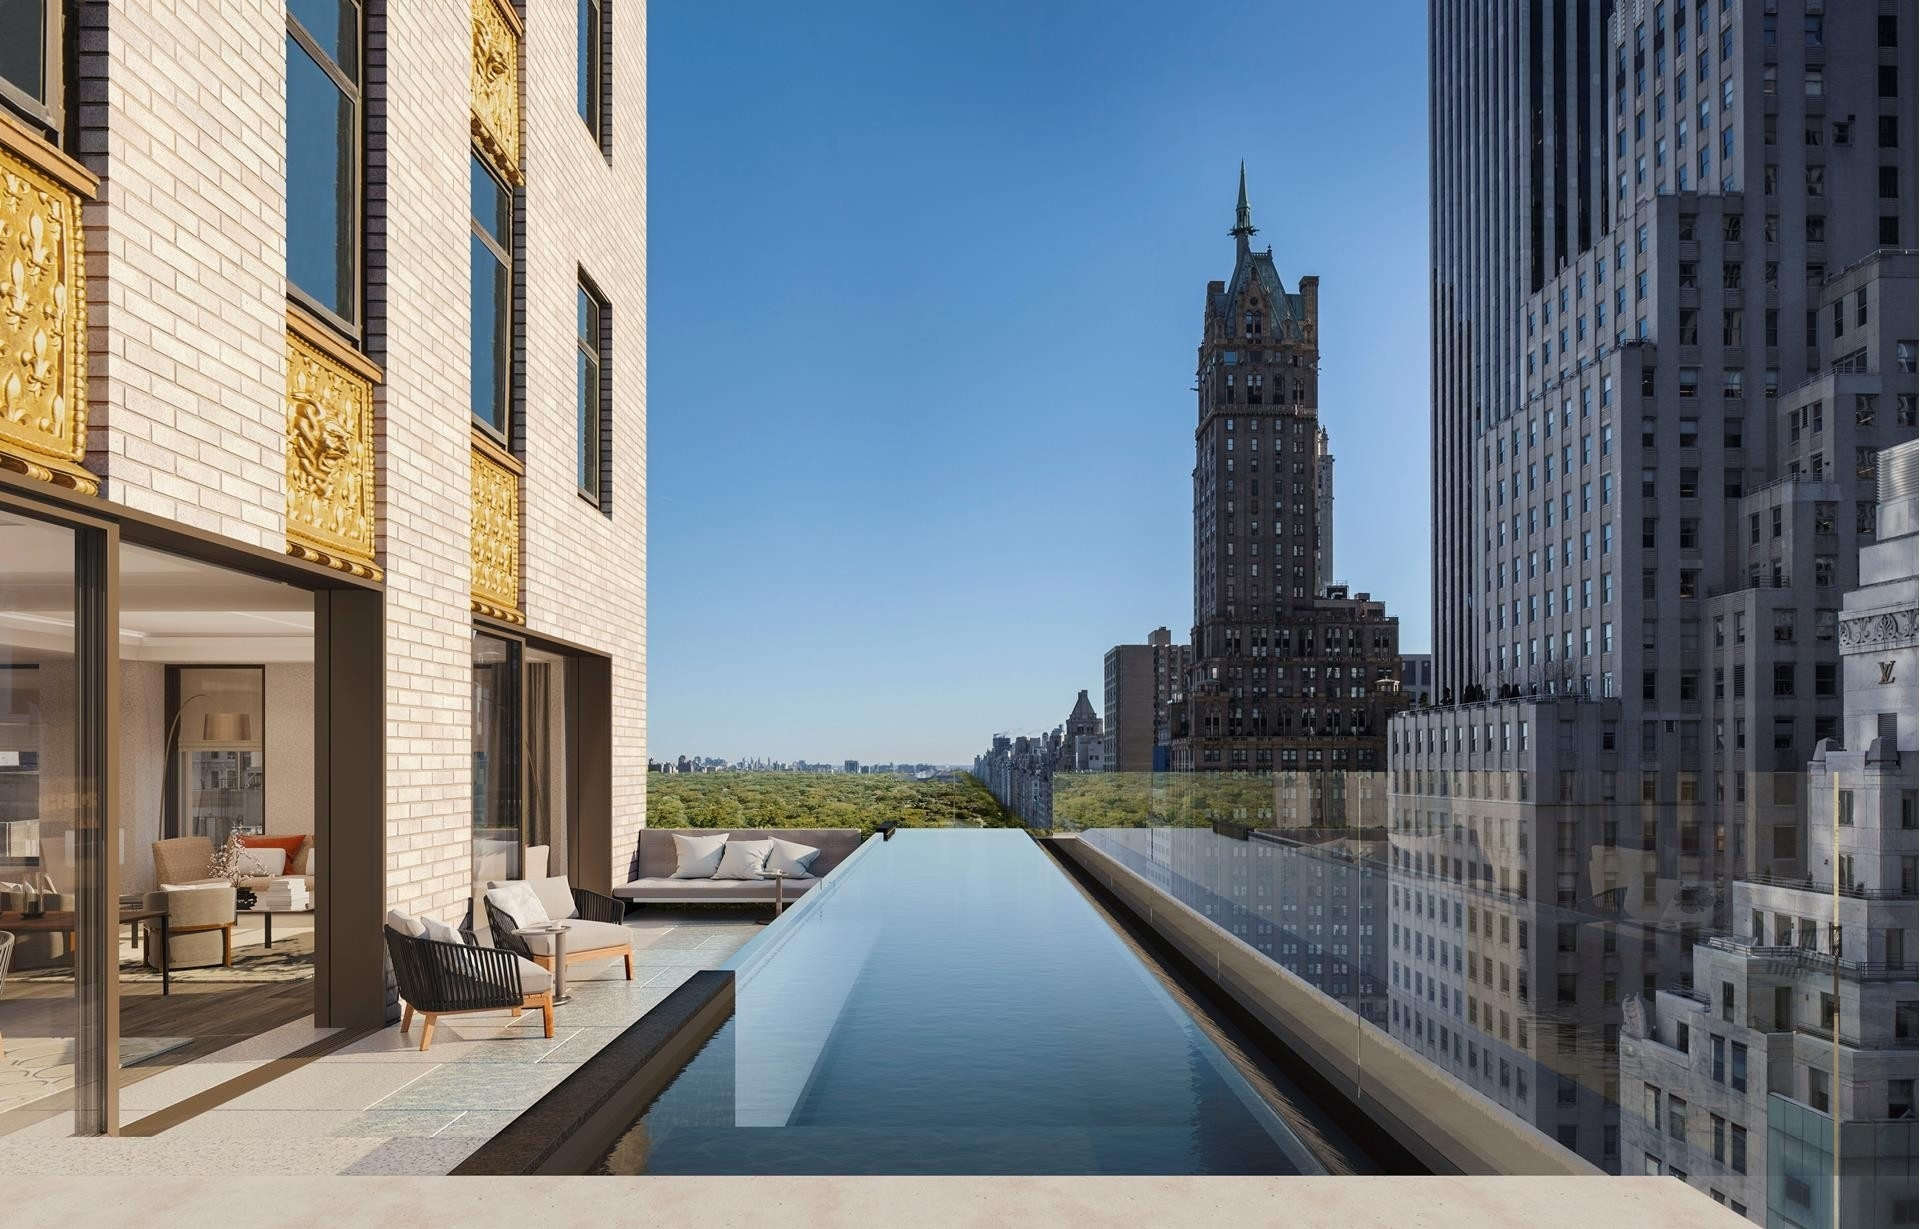 Property à Aman NY Residences, 730 FIFTH AVE , 18A Midtown West, New York, NY 10019